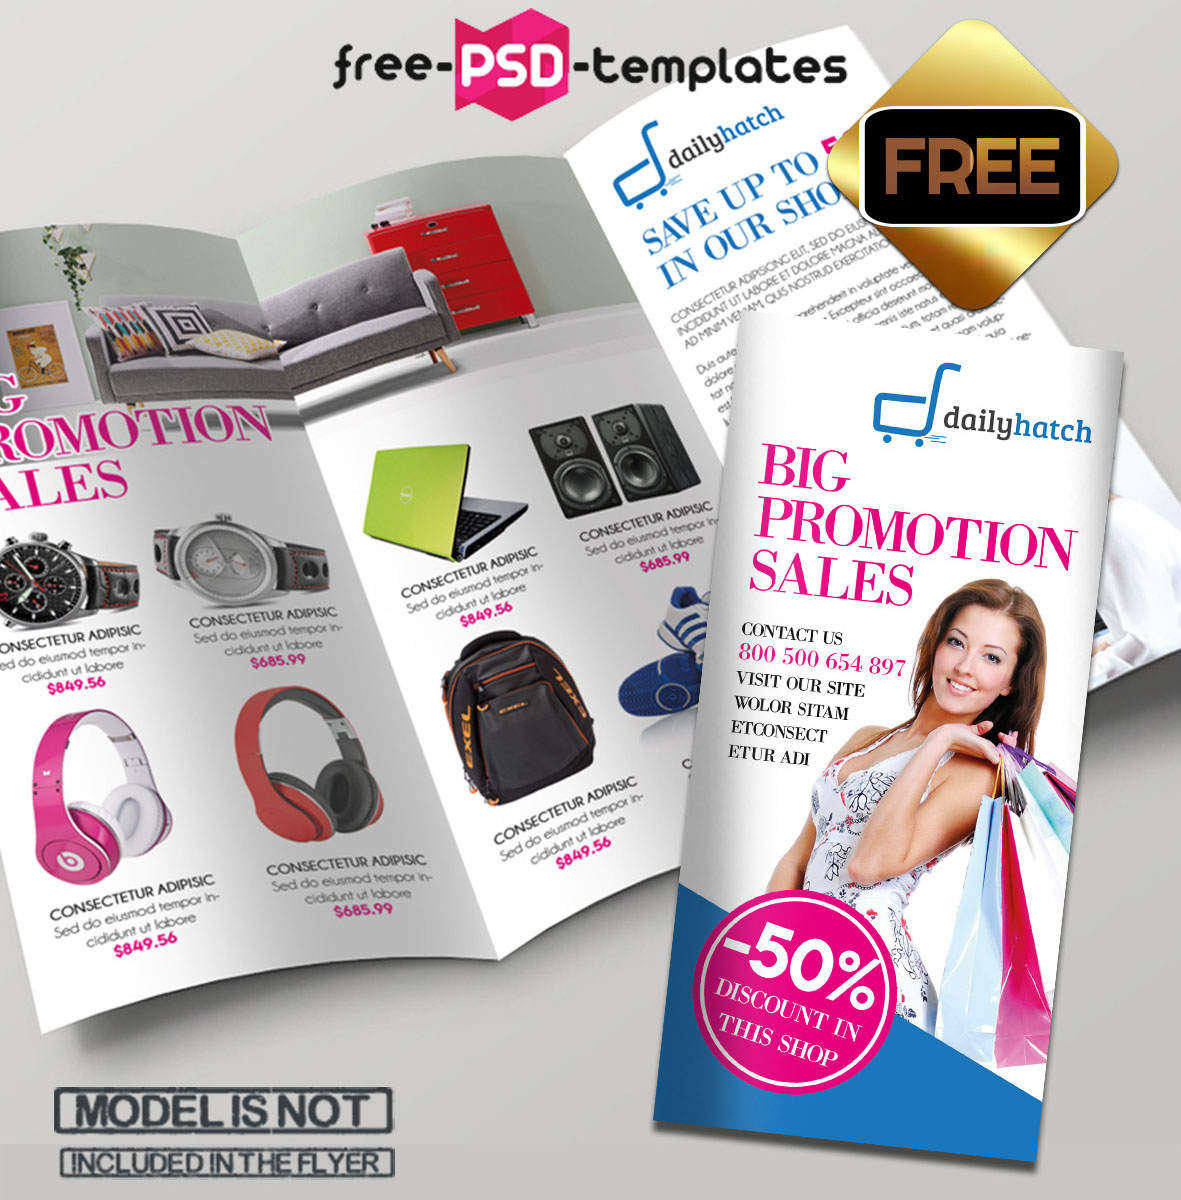 Free PSD TriFold BiFold Brochures Templates For Promoting - Sales brochure template